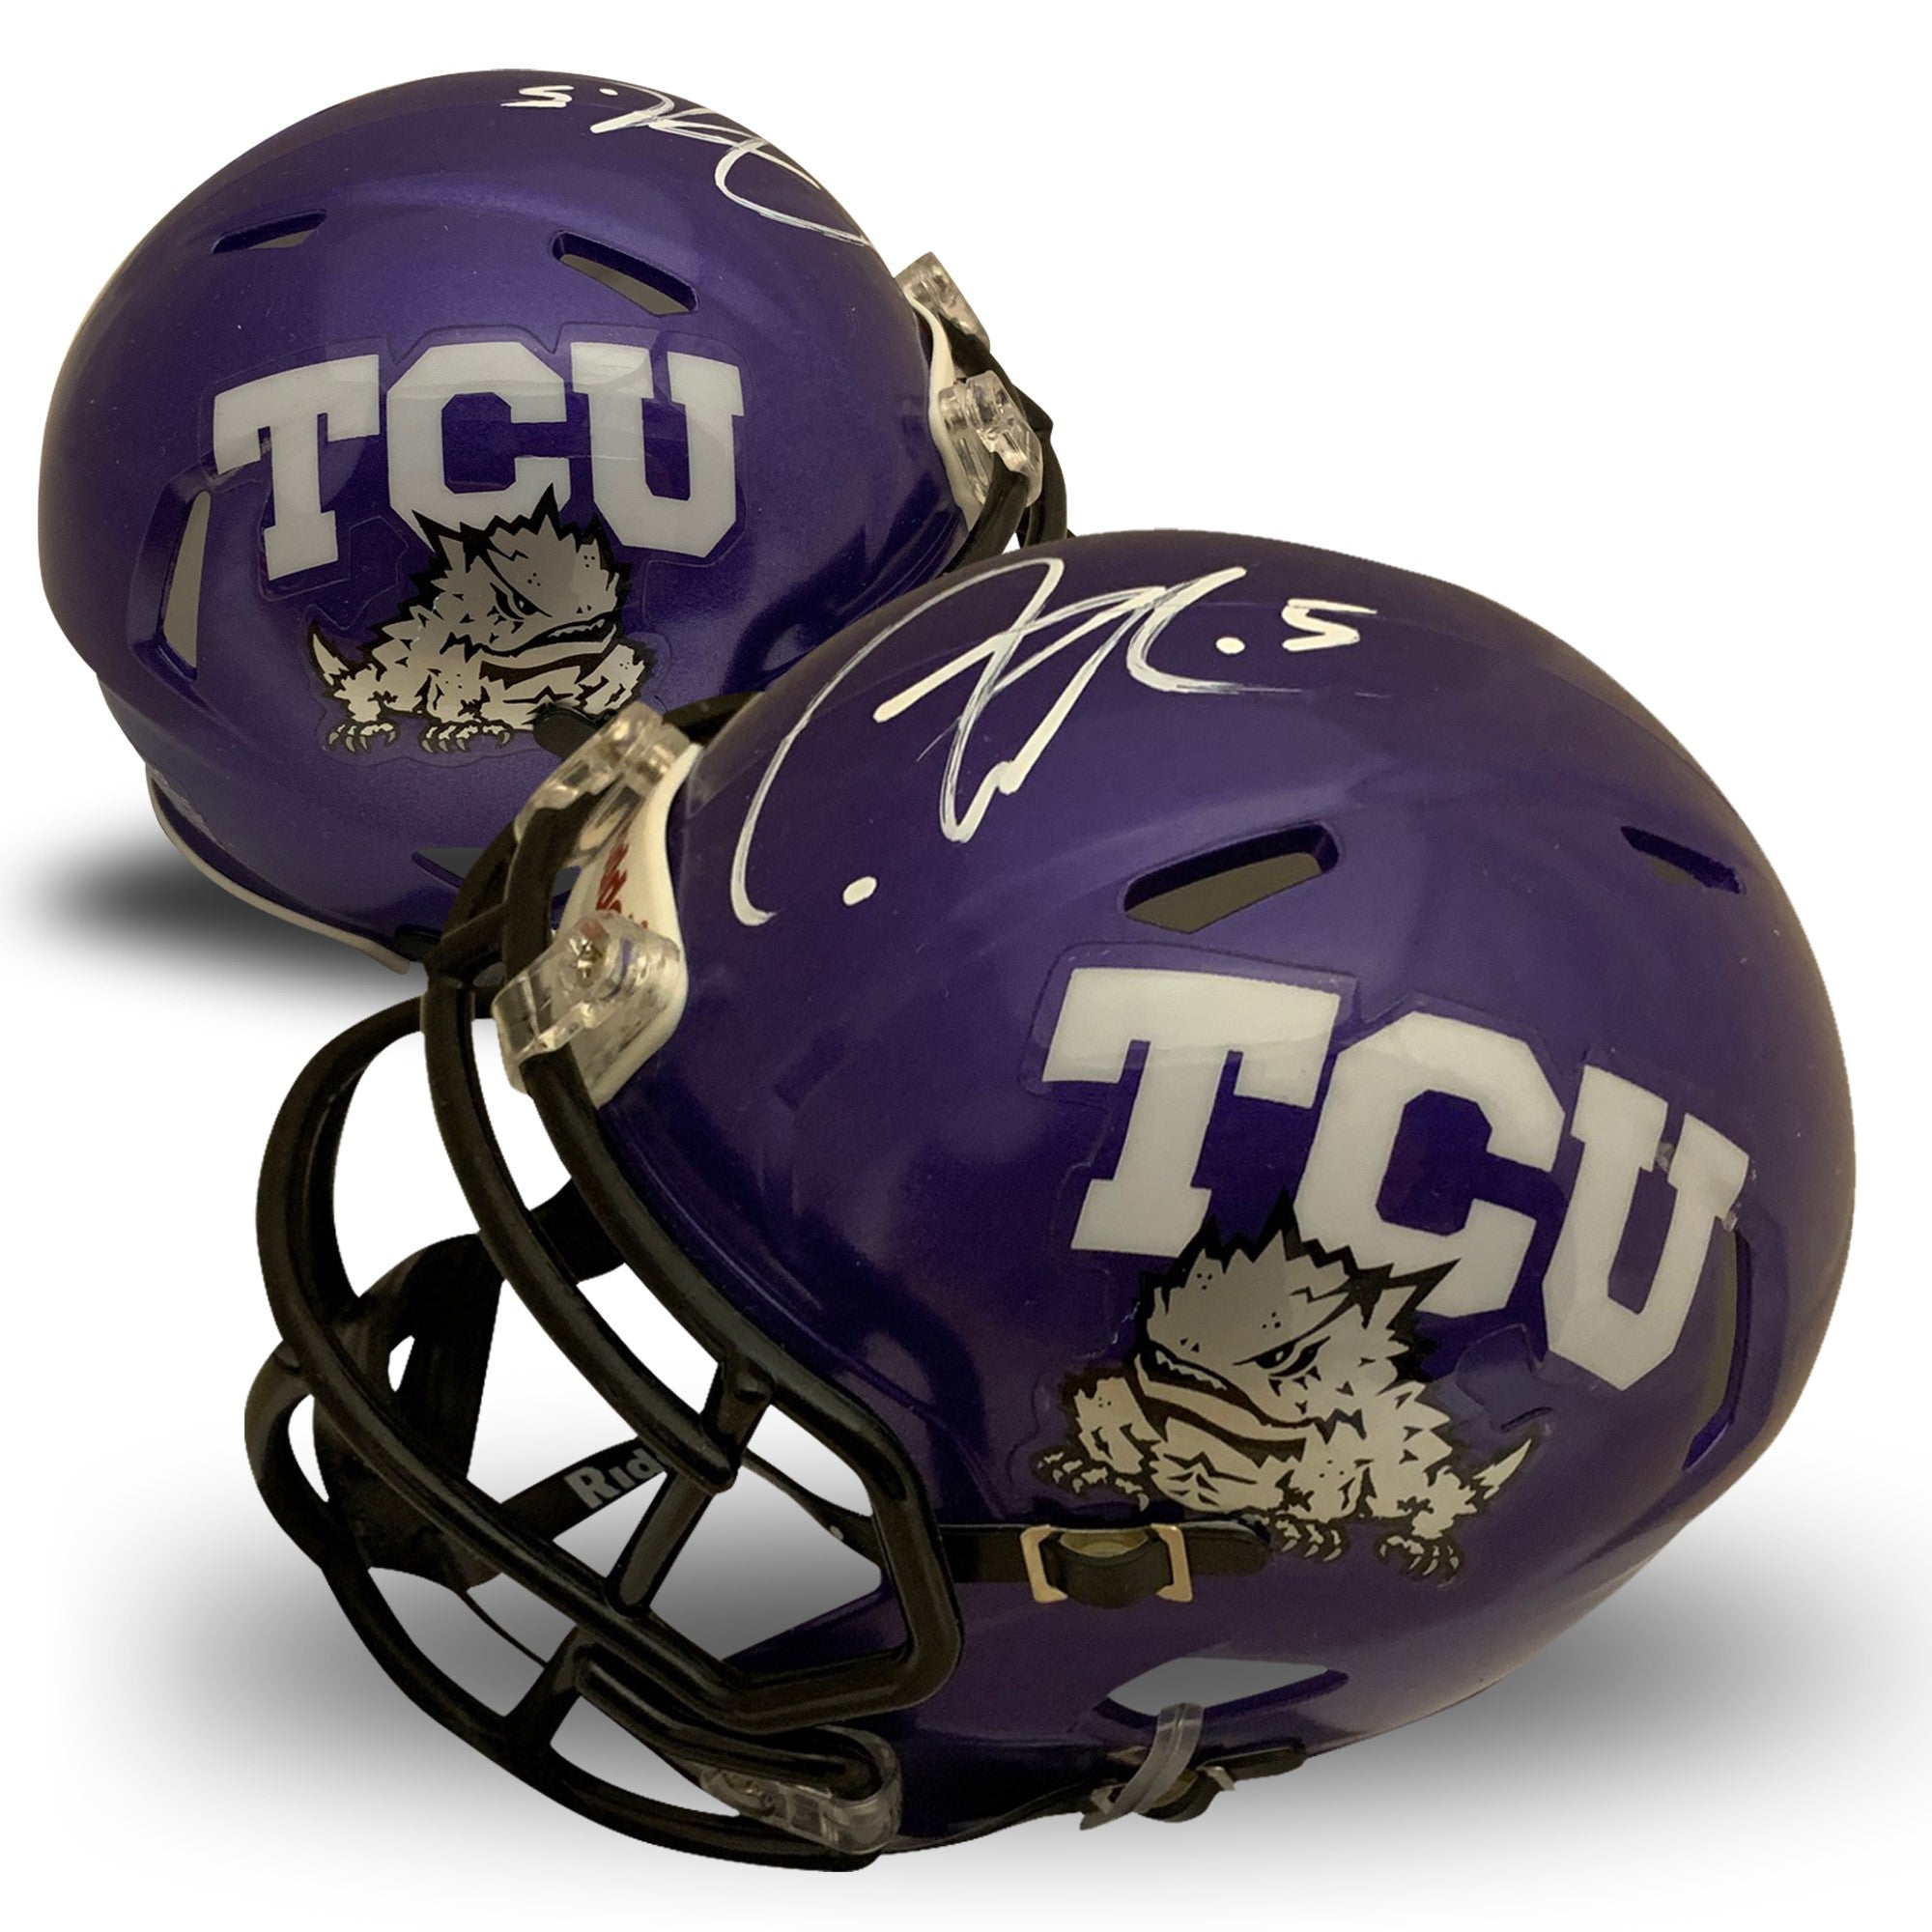 LaDainian Tomlinson Autographed TCU Horned Frogs Signed Football Mini Helmet PSA DNA COA